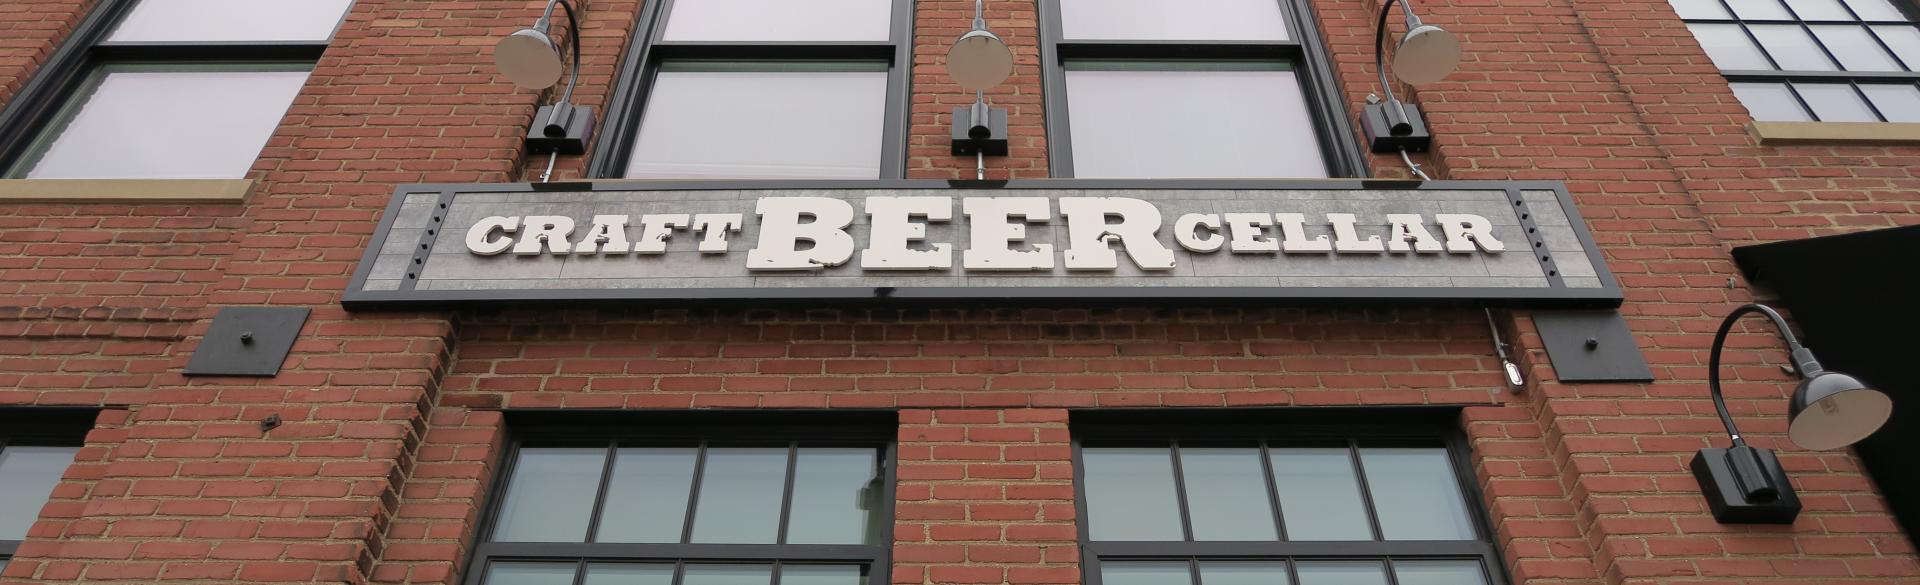 Craft Beer Cellar exterior